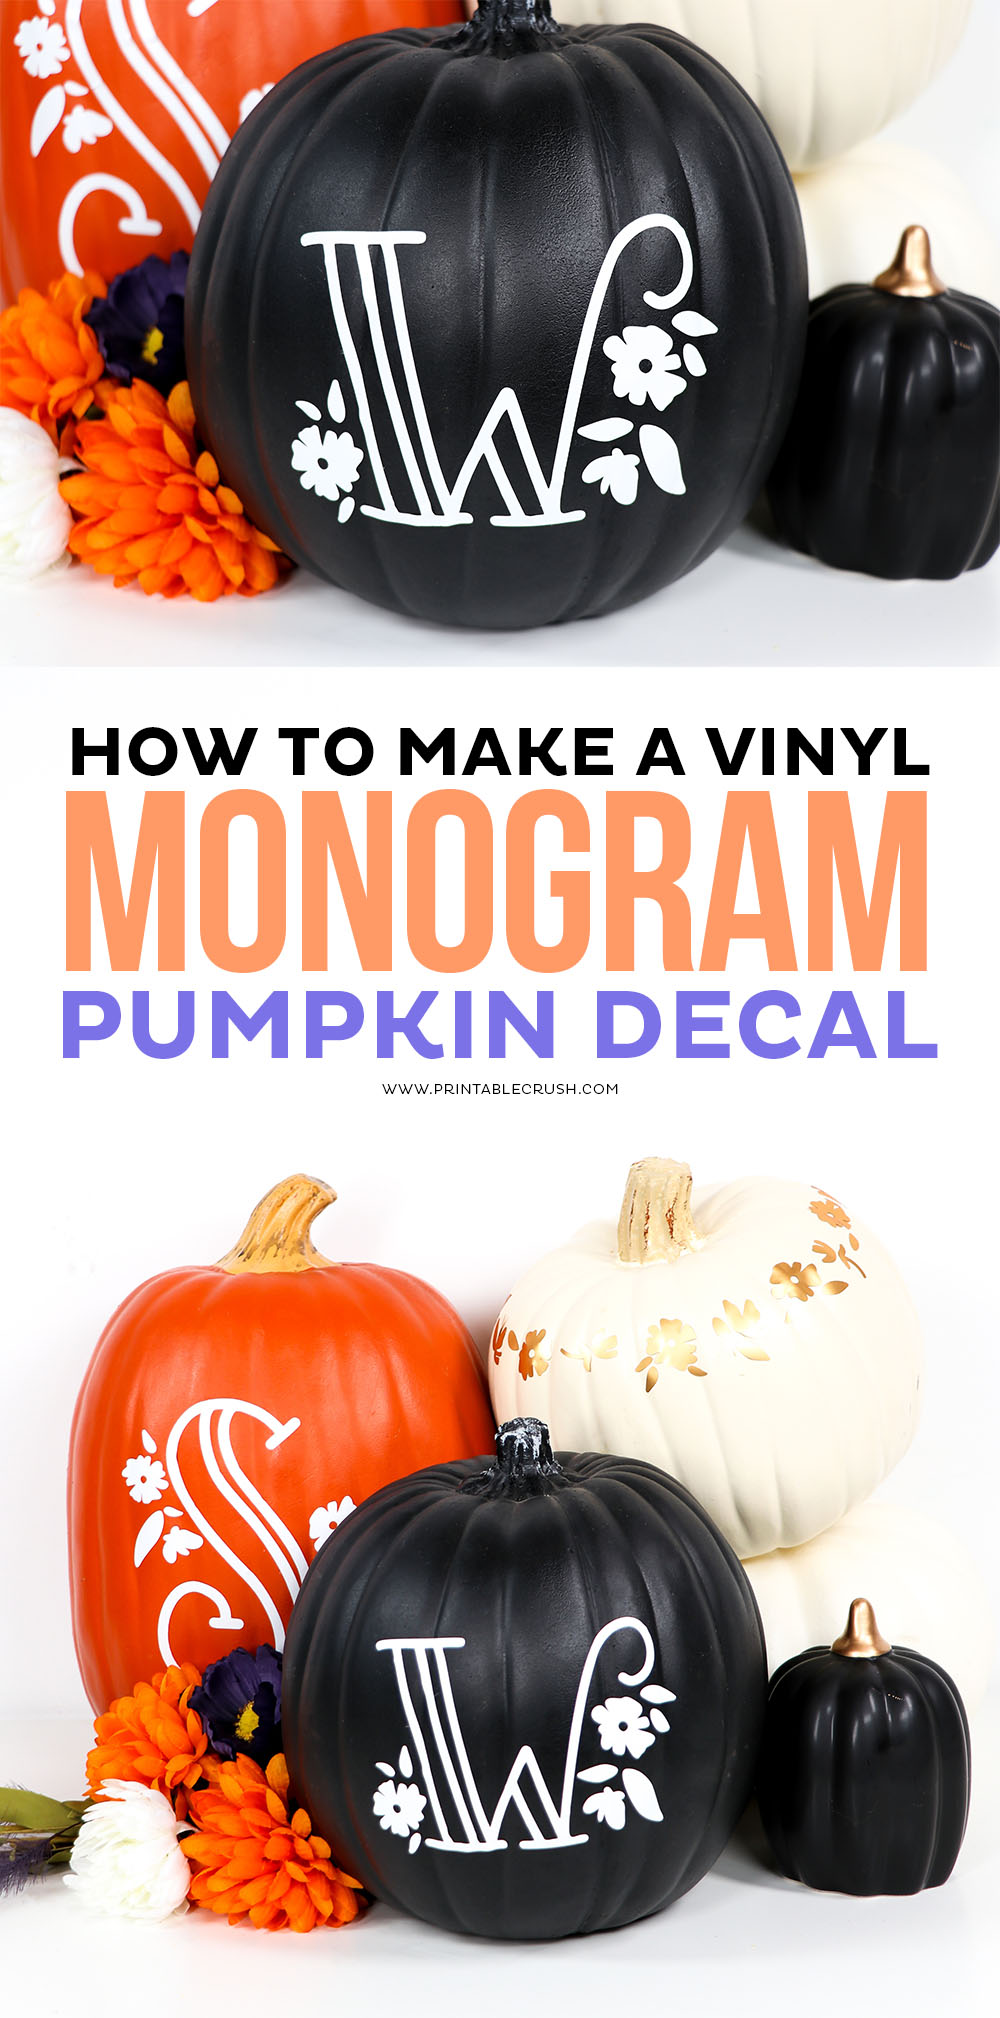 Make a monogram decal with vinyl #printablecrush #pumkindecals #vinylpumpkin #halloweencraft #fallcraft #falldecor #fallhomedecor #halloweendecor #pumpkindecorations #pumpkindecor